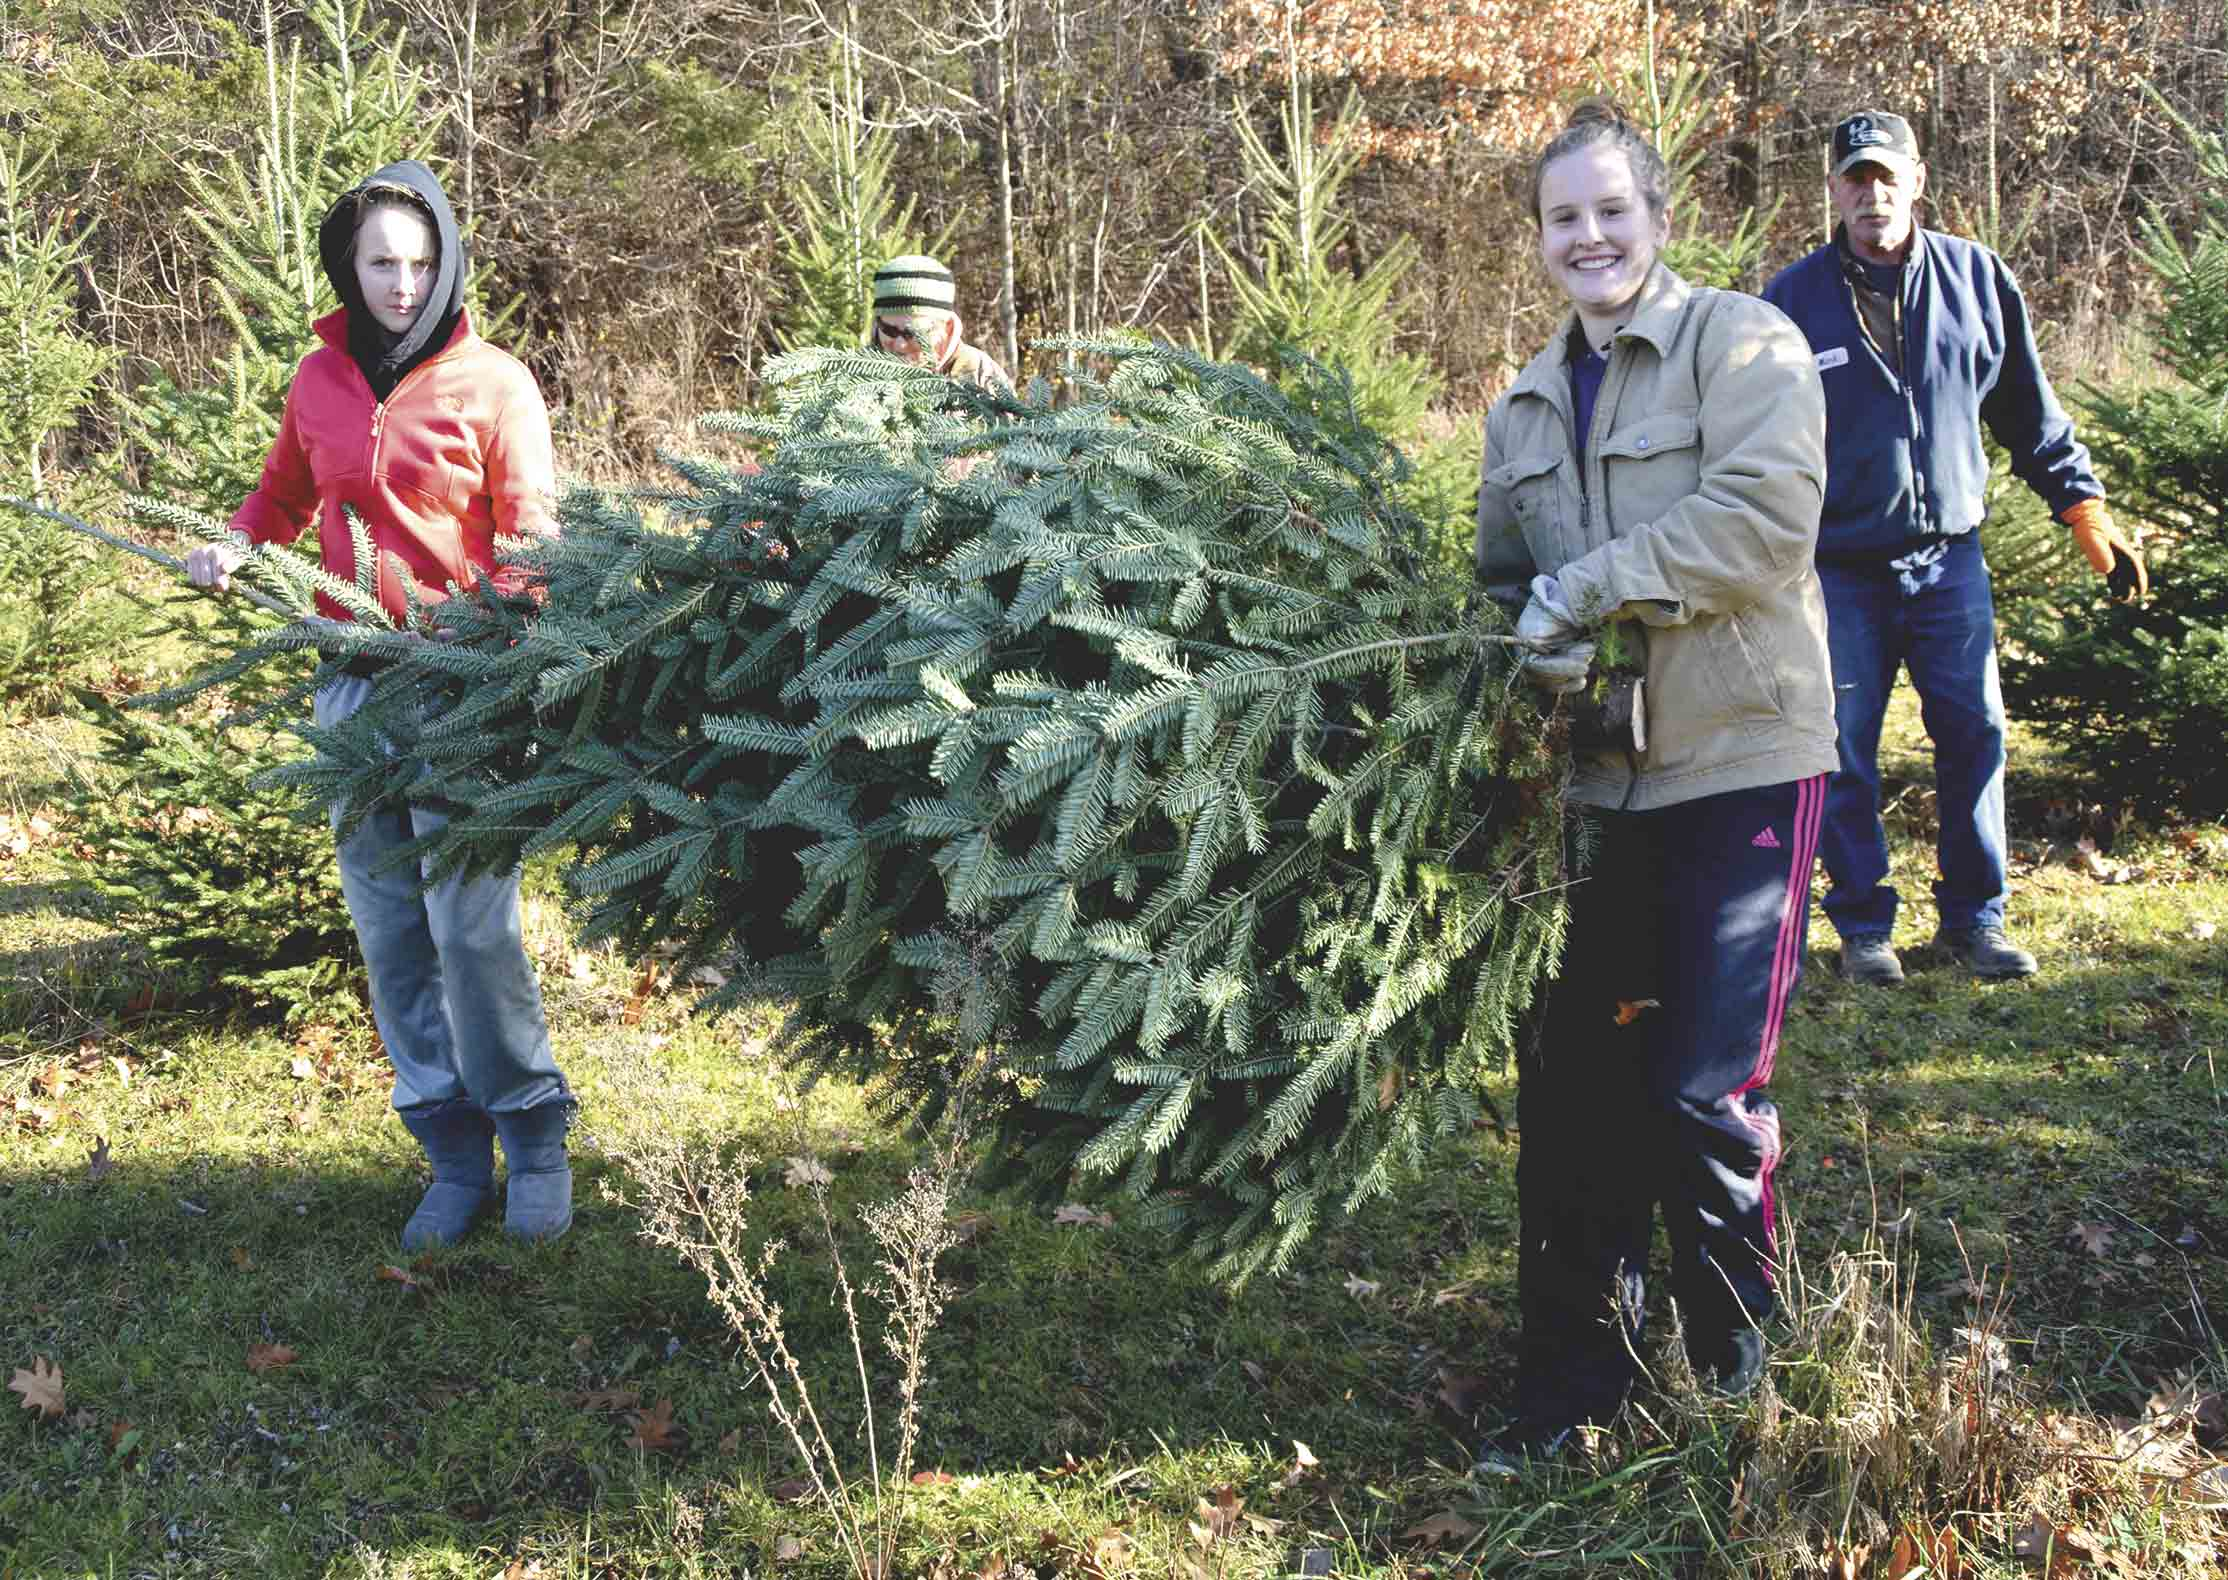 In family tradition, (front, l-r) Tessa and Macy Halverson help their grandparents (back, l-r) Pam and Mark Halverson pick out a Christmas tree every year. This year, the group decided to get their tree from the Volga Valley Christmas Tree Farm in rural Fayette. Chris DeBack photos...